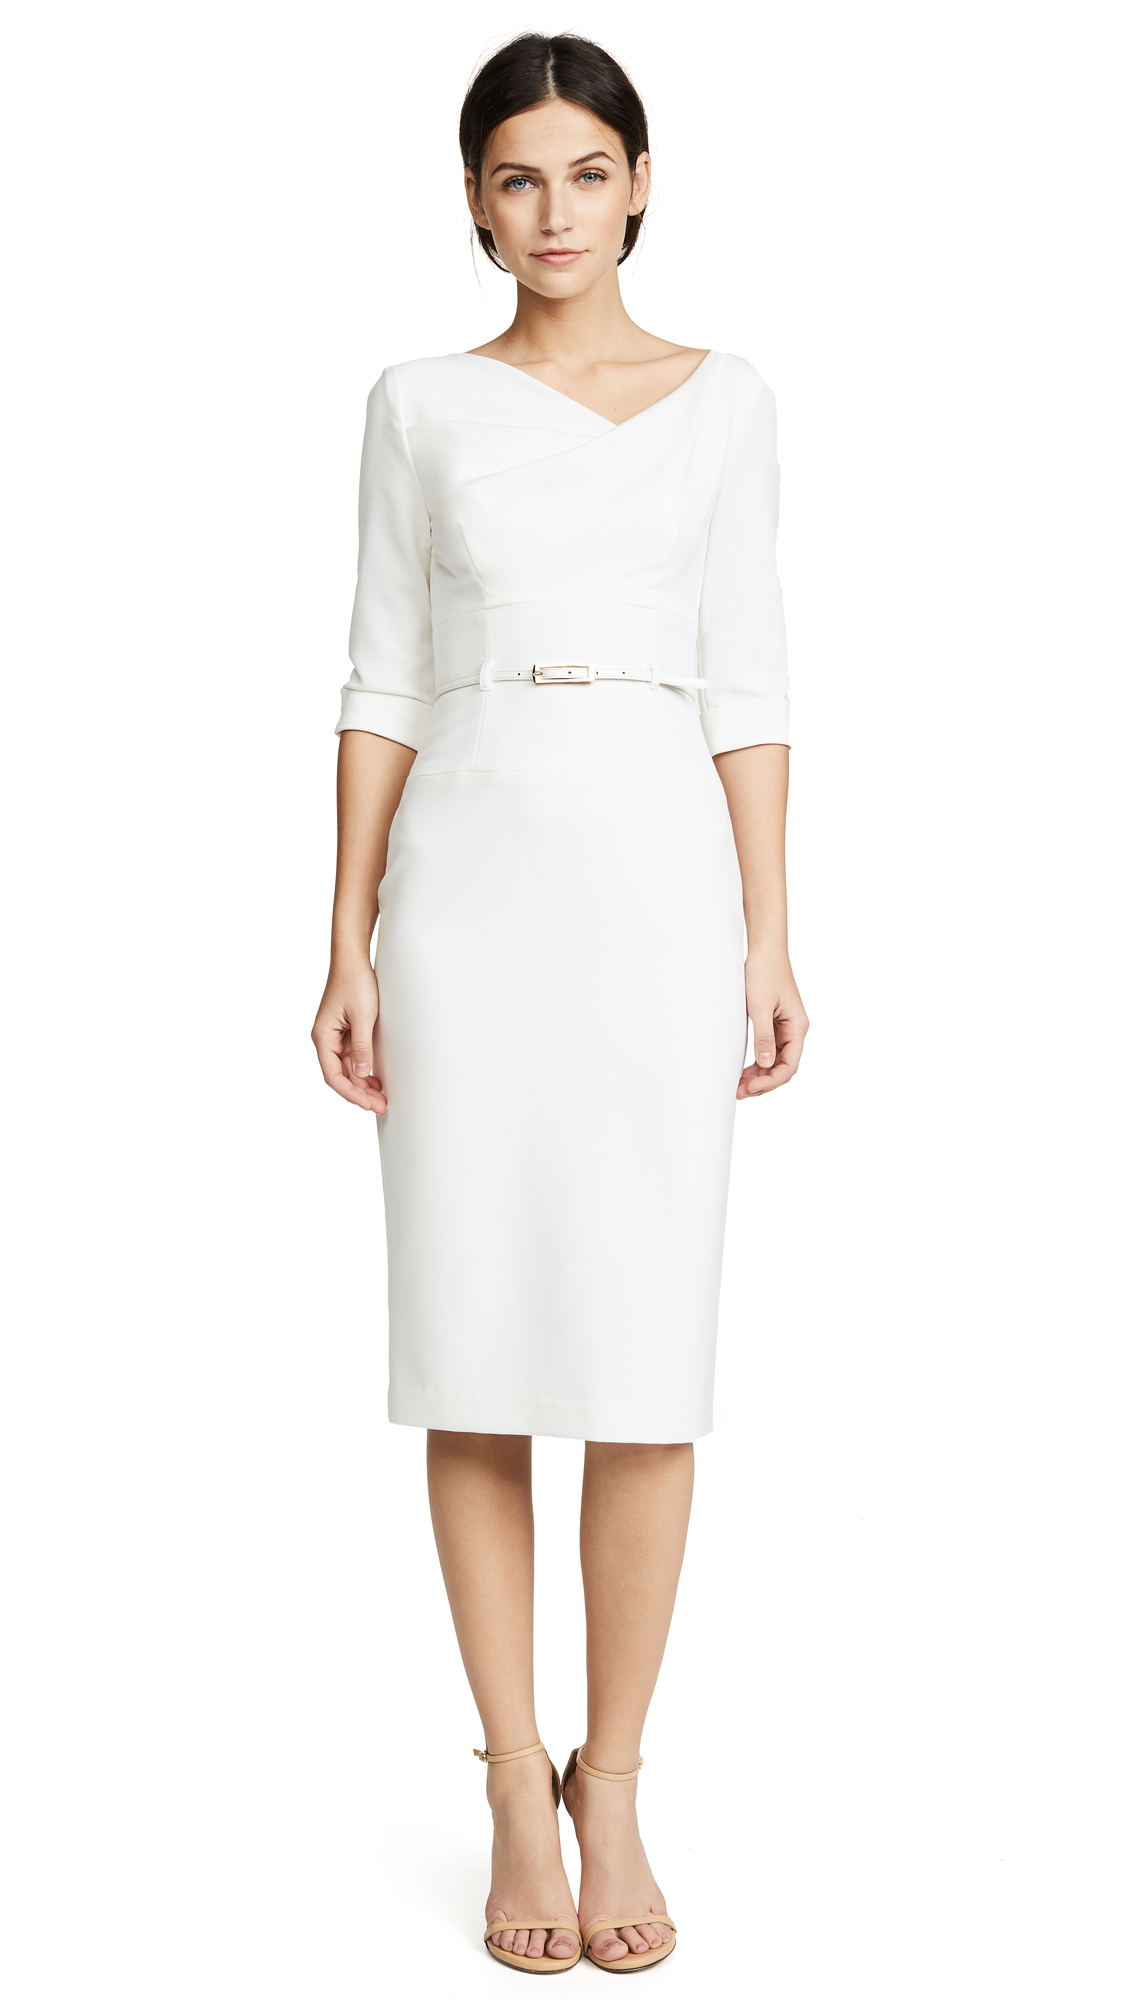 Black Halo 3/4 Sleeve Jackie O Dress - Winter White